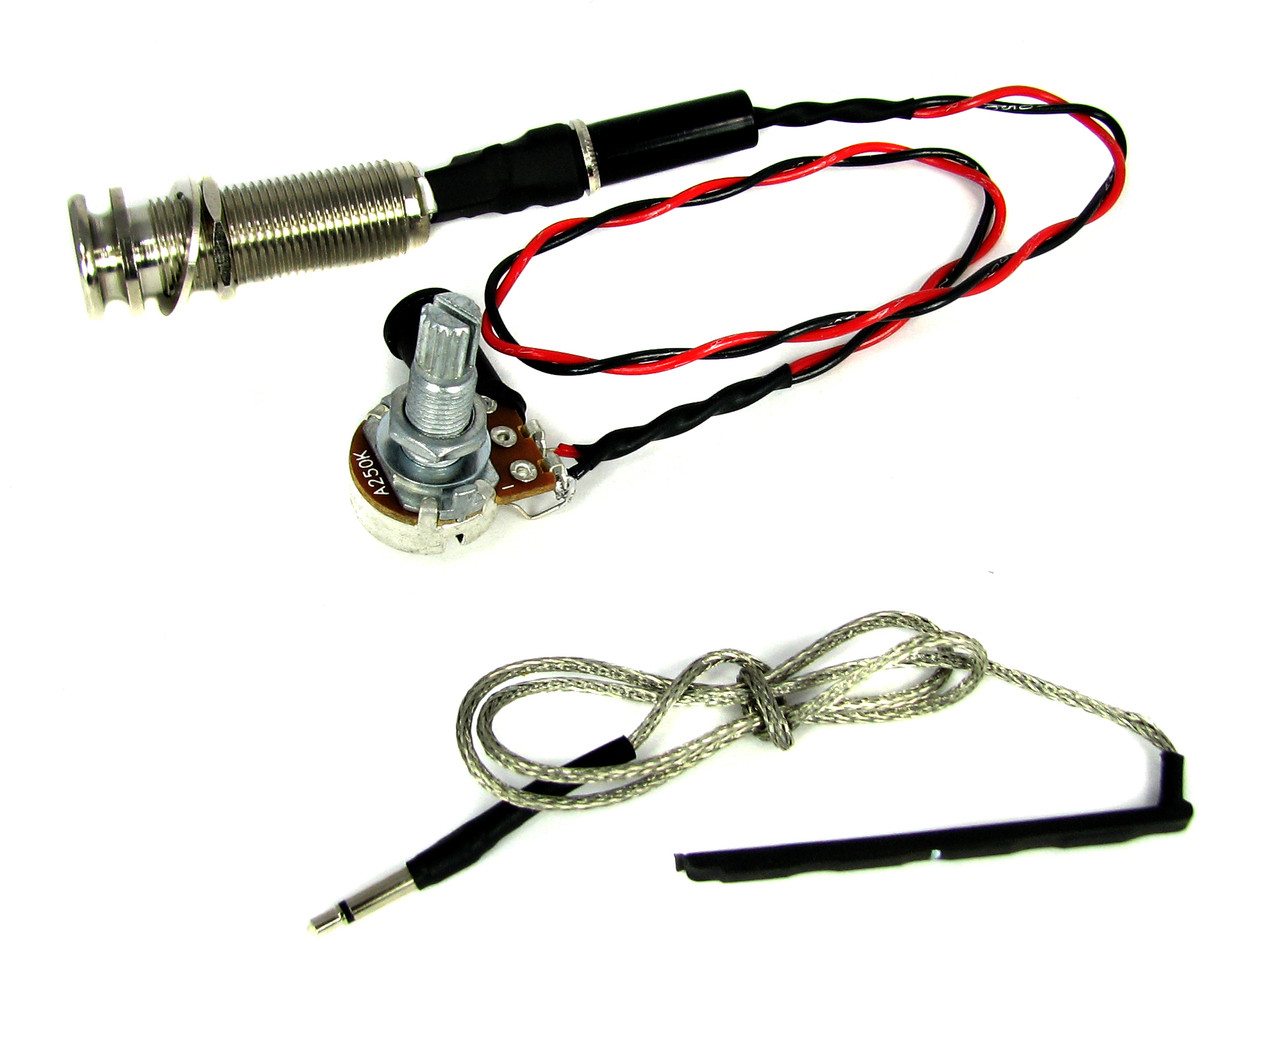 hight resolution of ukulele rod piezo harness with volume endpin strap button jack no solder